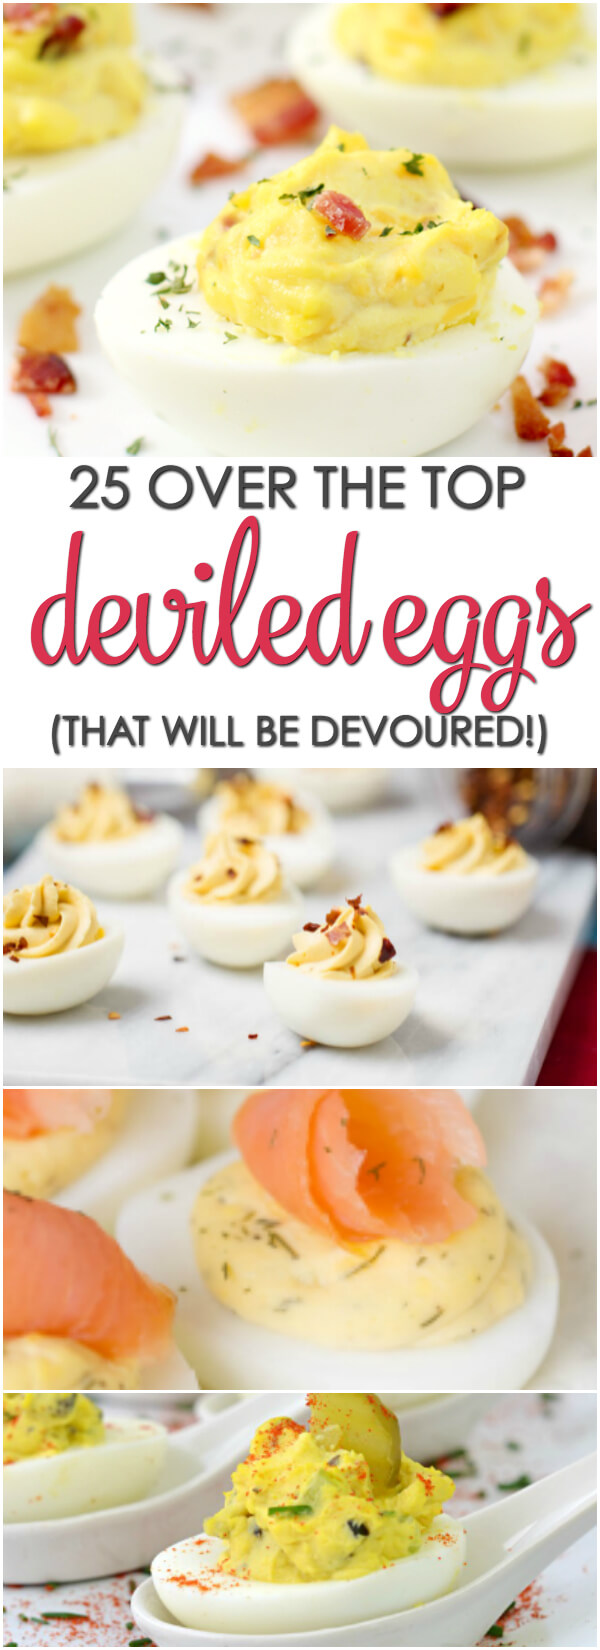 25 Deviled Egg Recipes that are over the top delicious and will be devoured